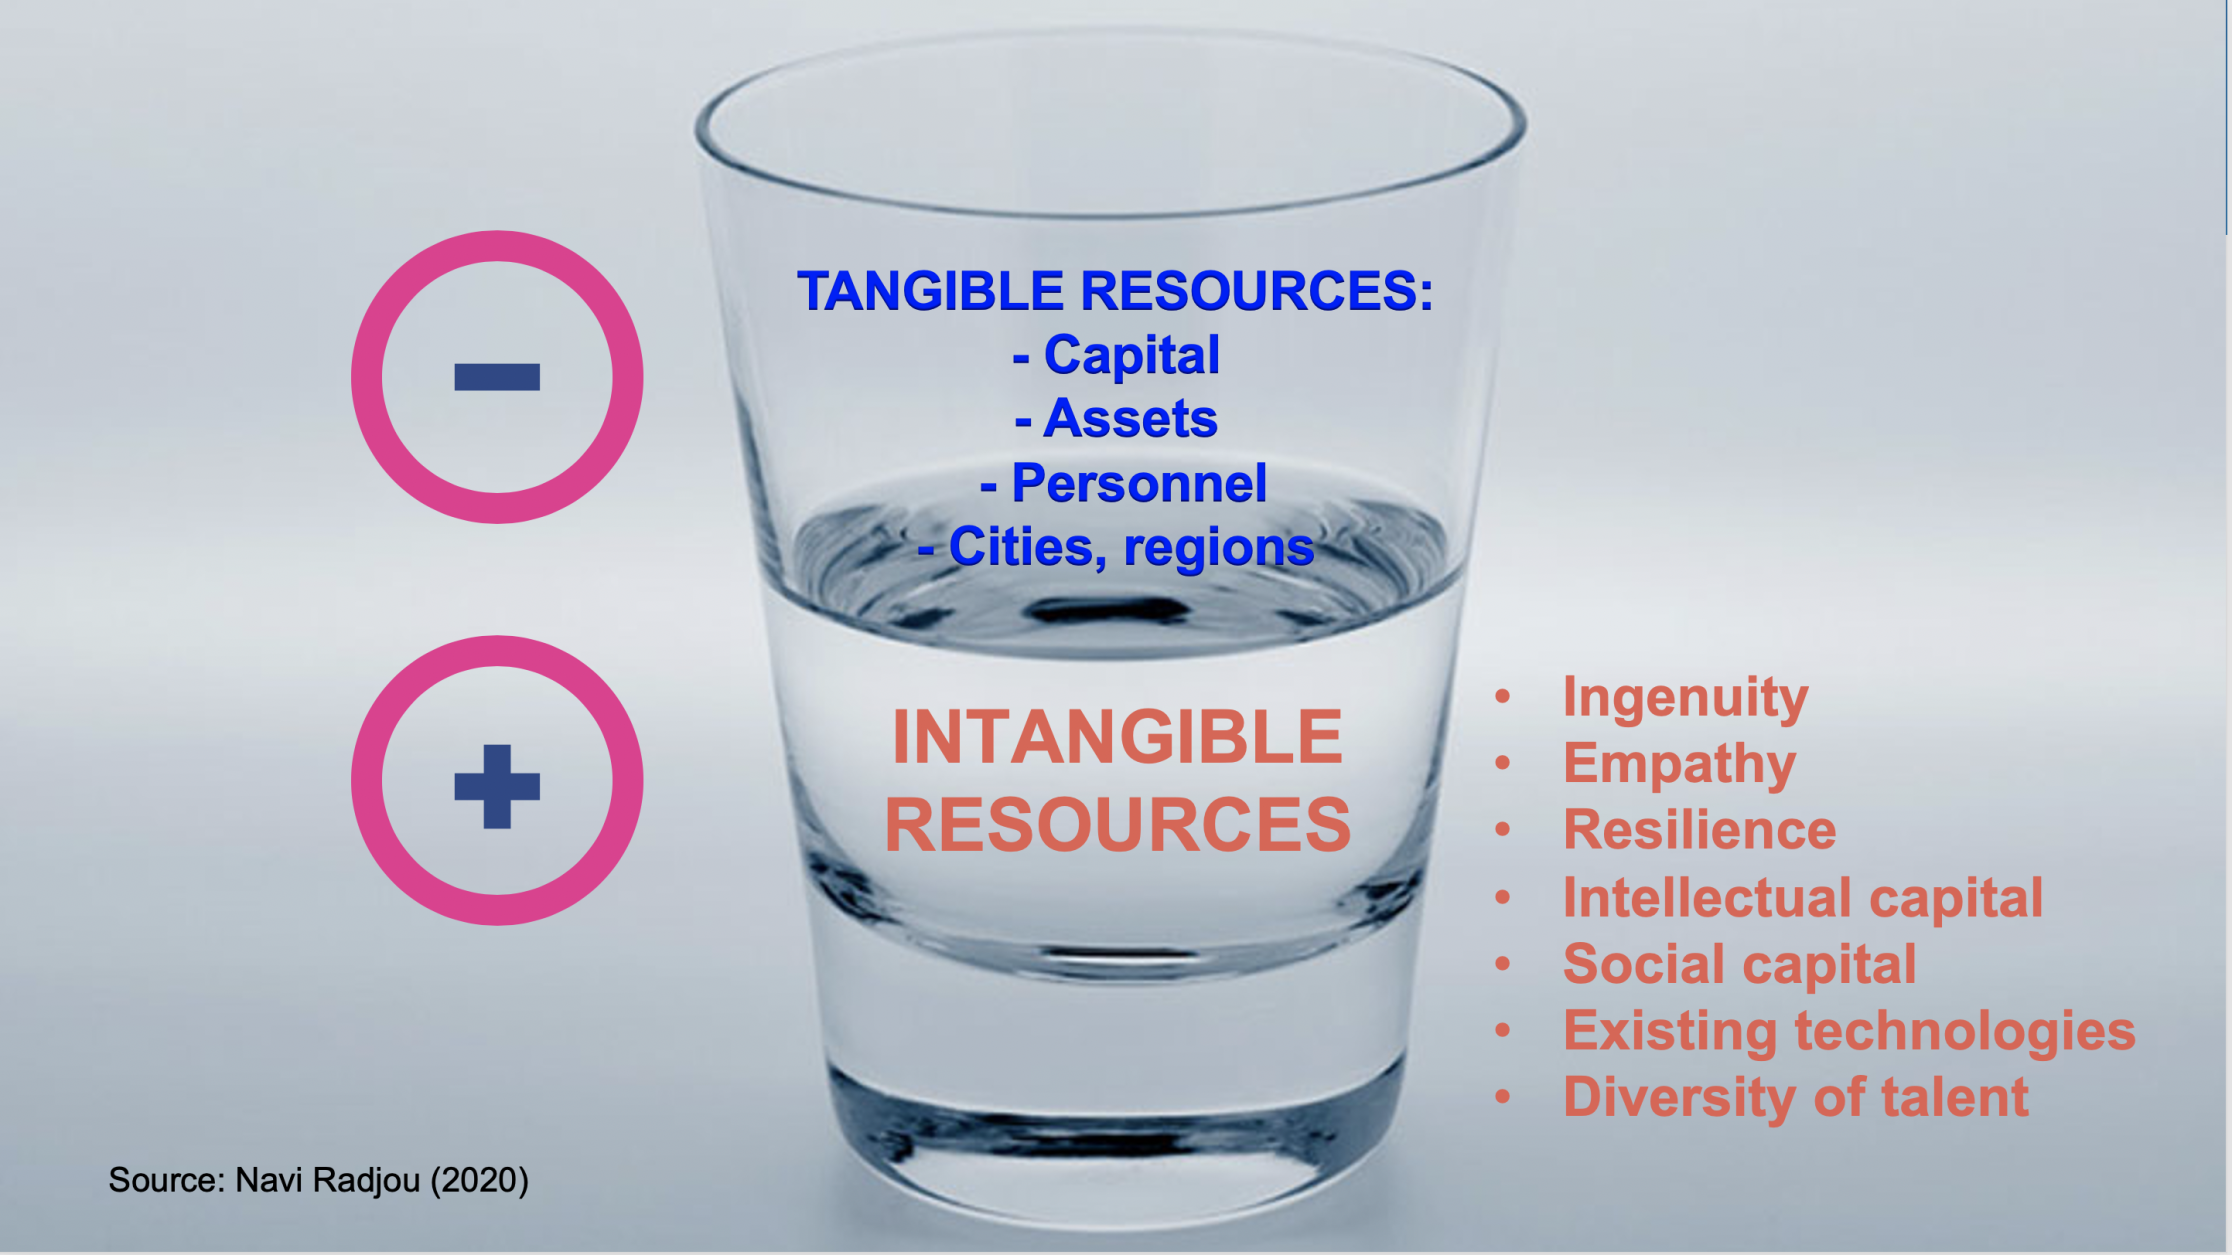 A frugal leader sees the glass as half full: he uses abundant intangible resources to solve scarcity of tangible resources